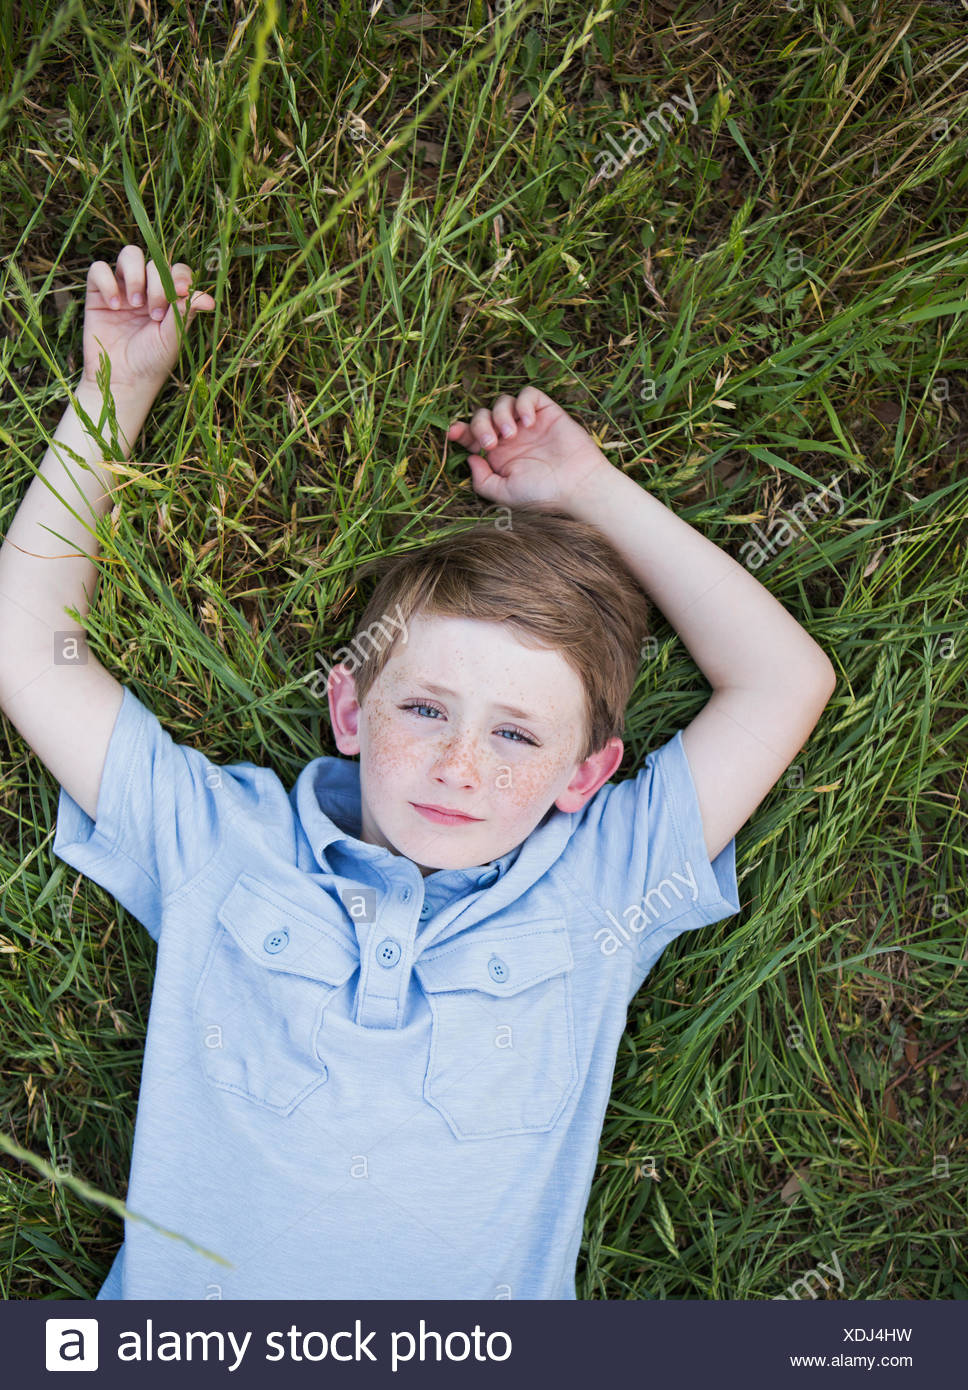 A Boy In A Blue Shirt Lying On His Back On Grass Stock